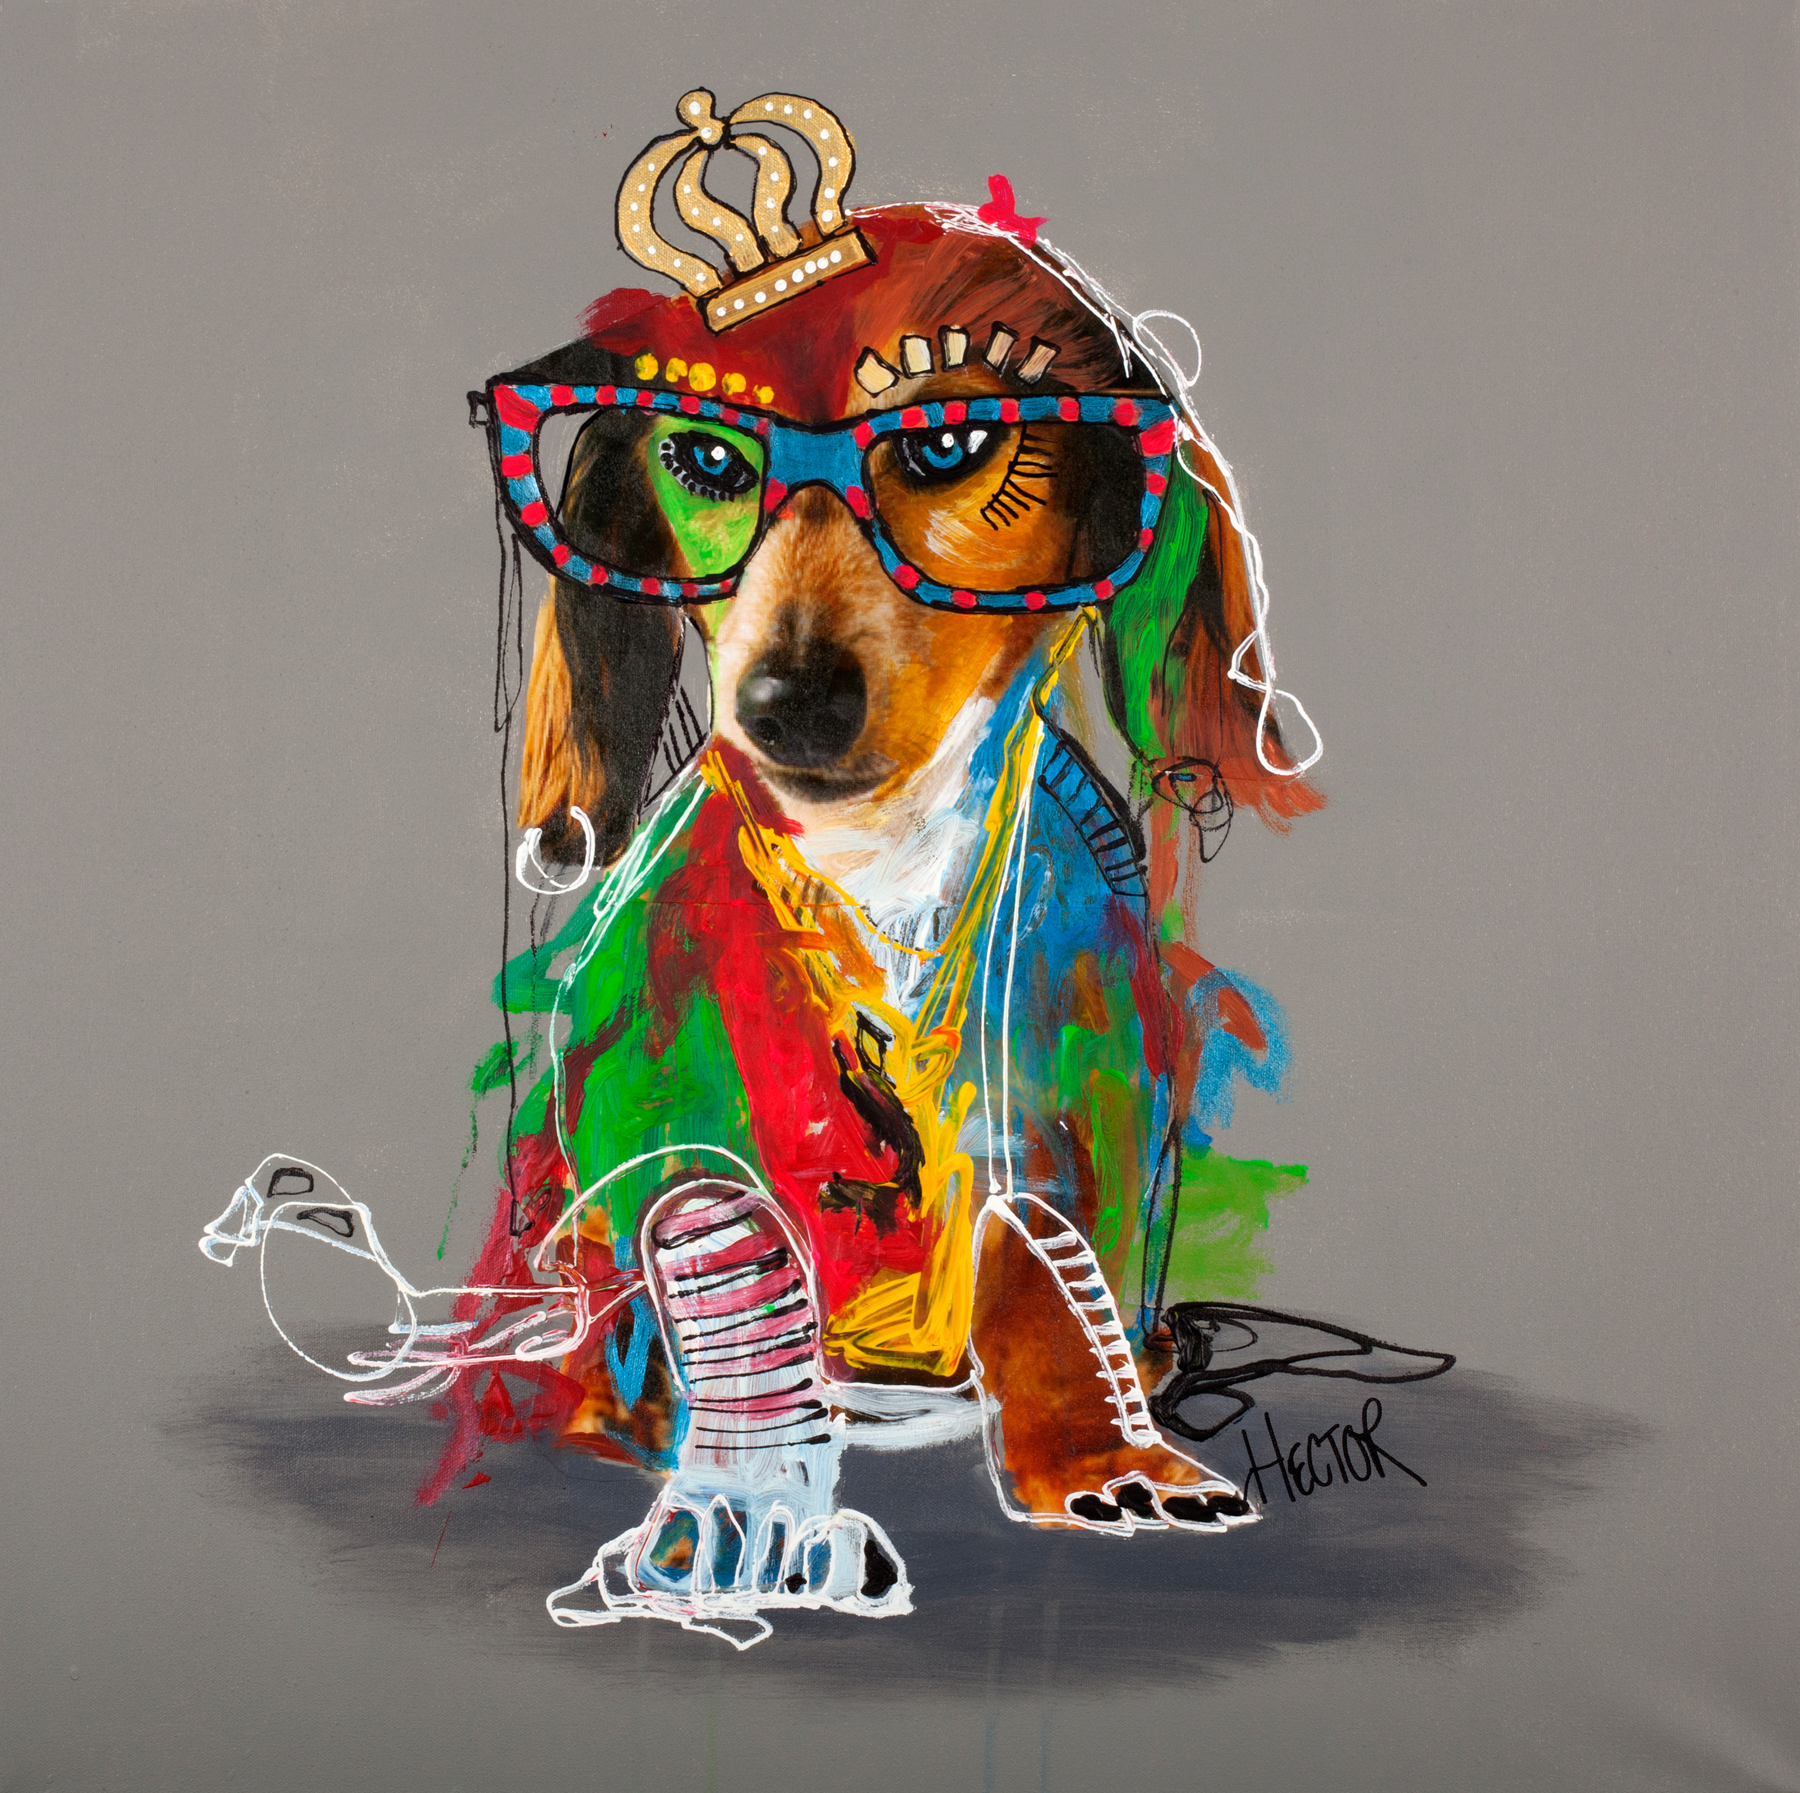 DOG 2 - Printed Wall Deco - 70 x 70 cm